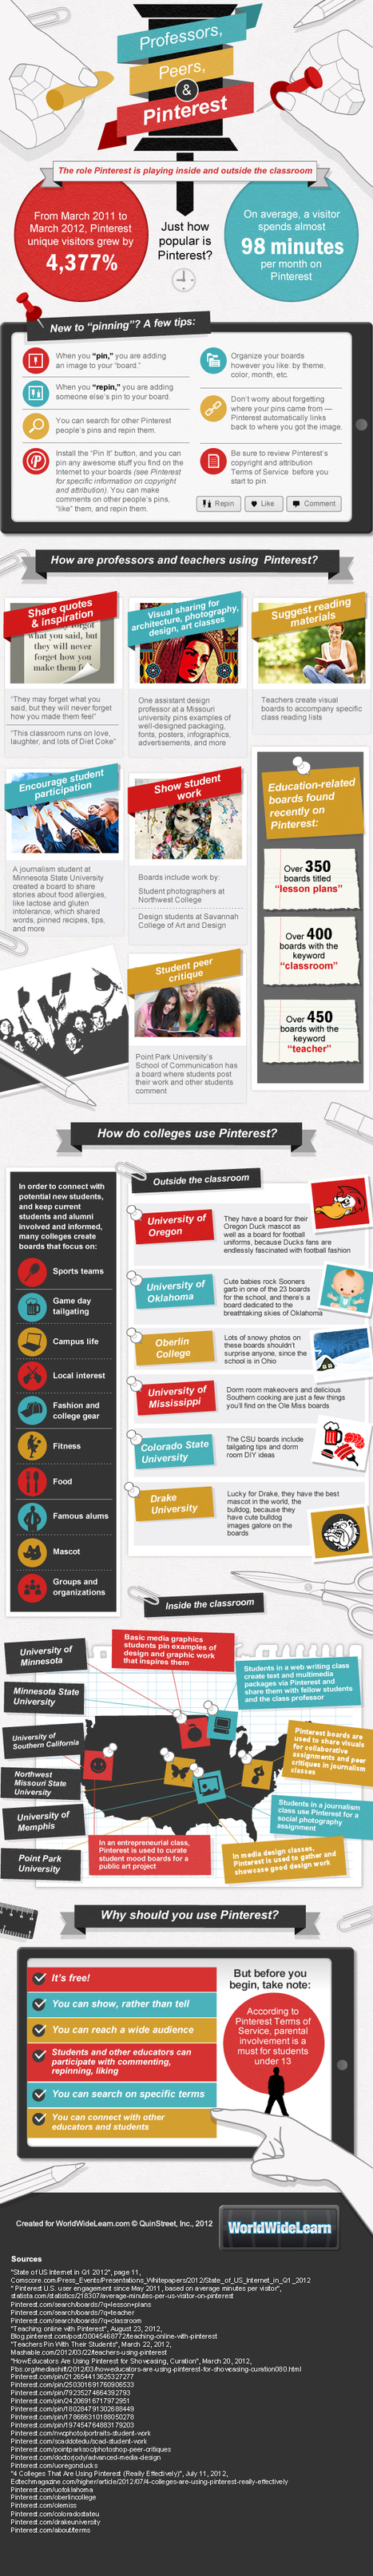 Professors, Peers, & Pinterest: The Role of Pinterest is Playing Inside and Outside the Classroom [Infographic] | Business 2 Community | Pinterest | Scoop.it